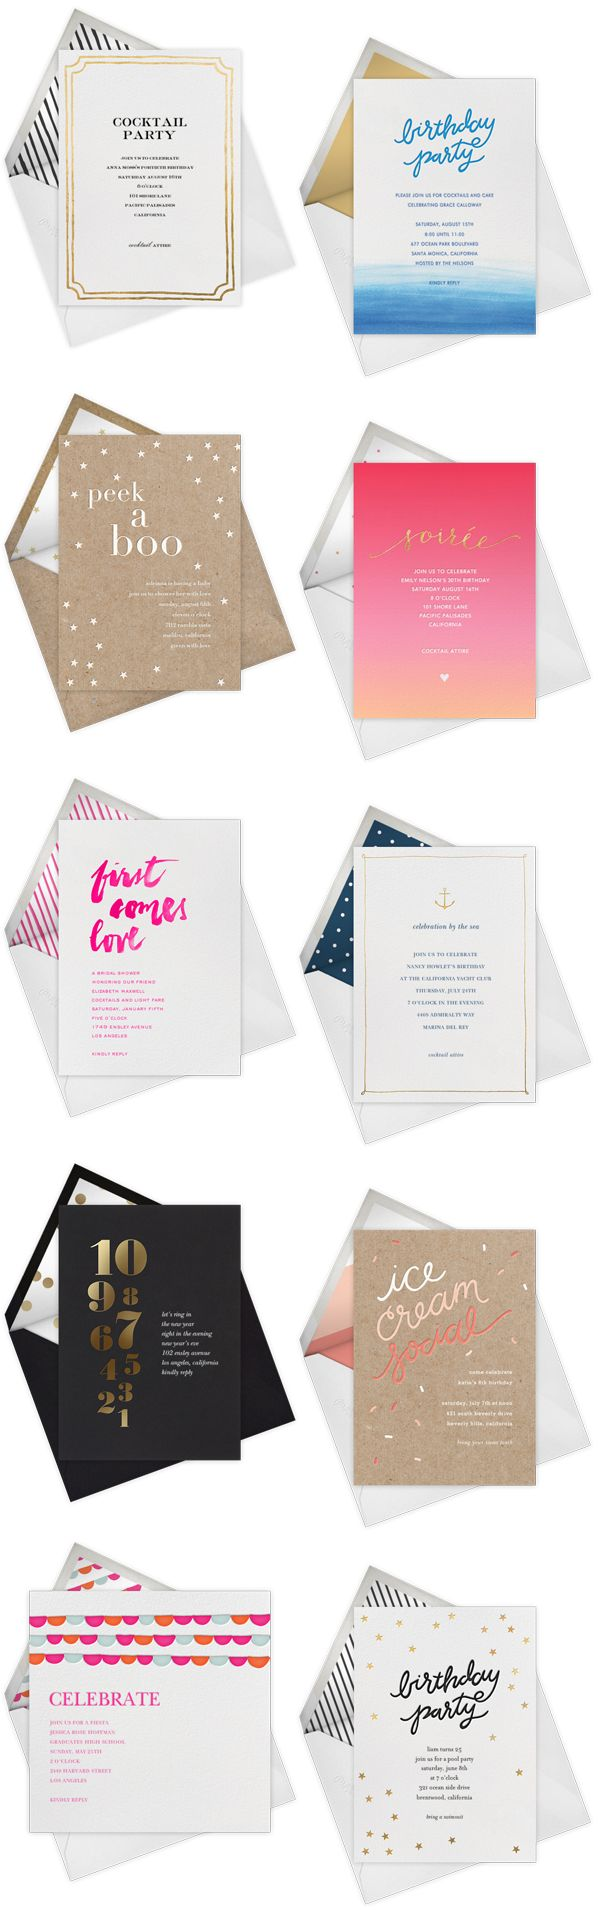 Quick Pick: Gold Foil Birthday Party Invitations, Party Invitations, Holiday Cards and more by Sugar Paper for Paperless Post via Oh So Beautiful Paper